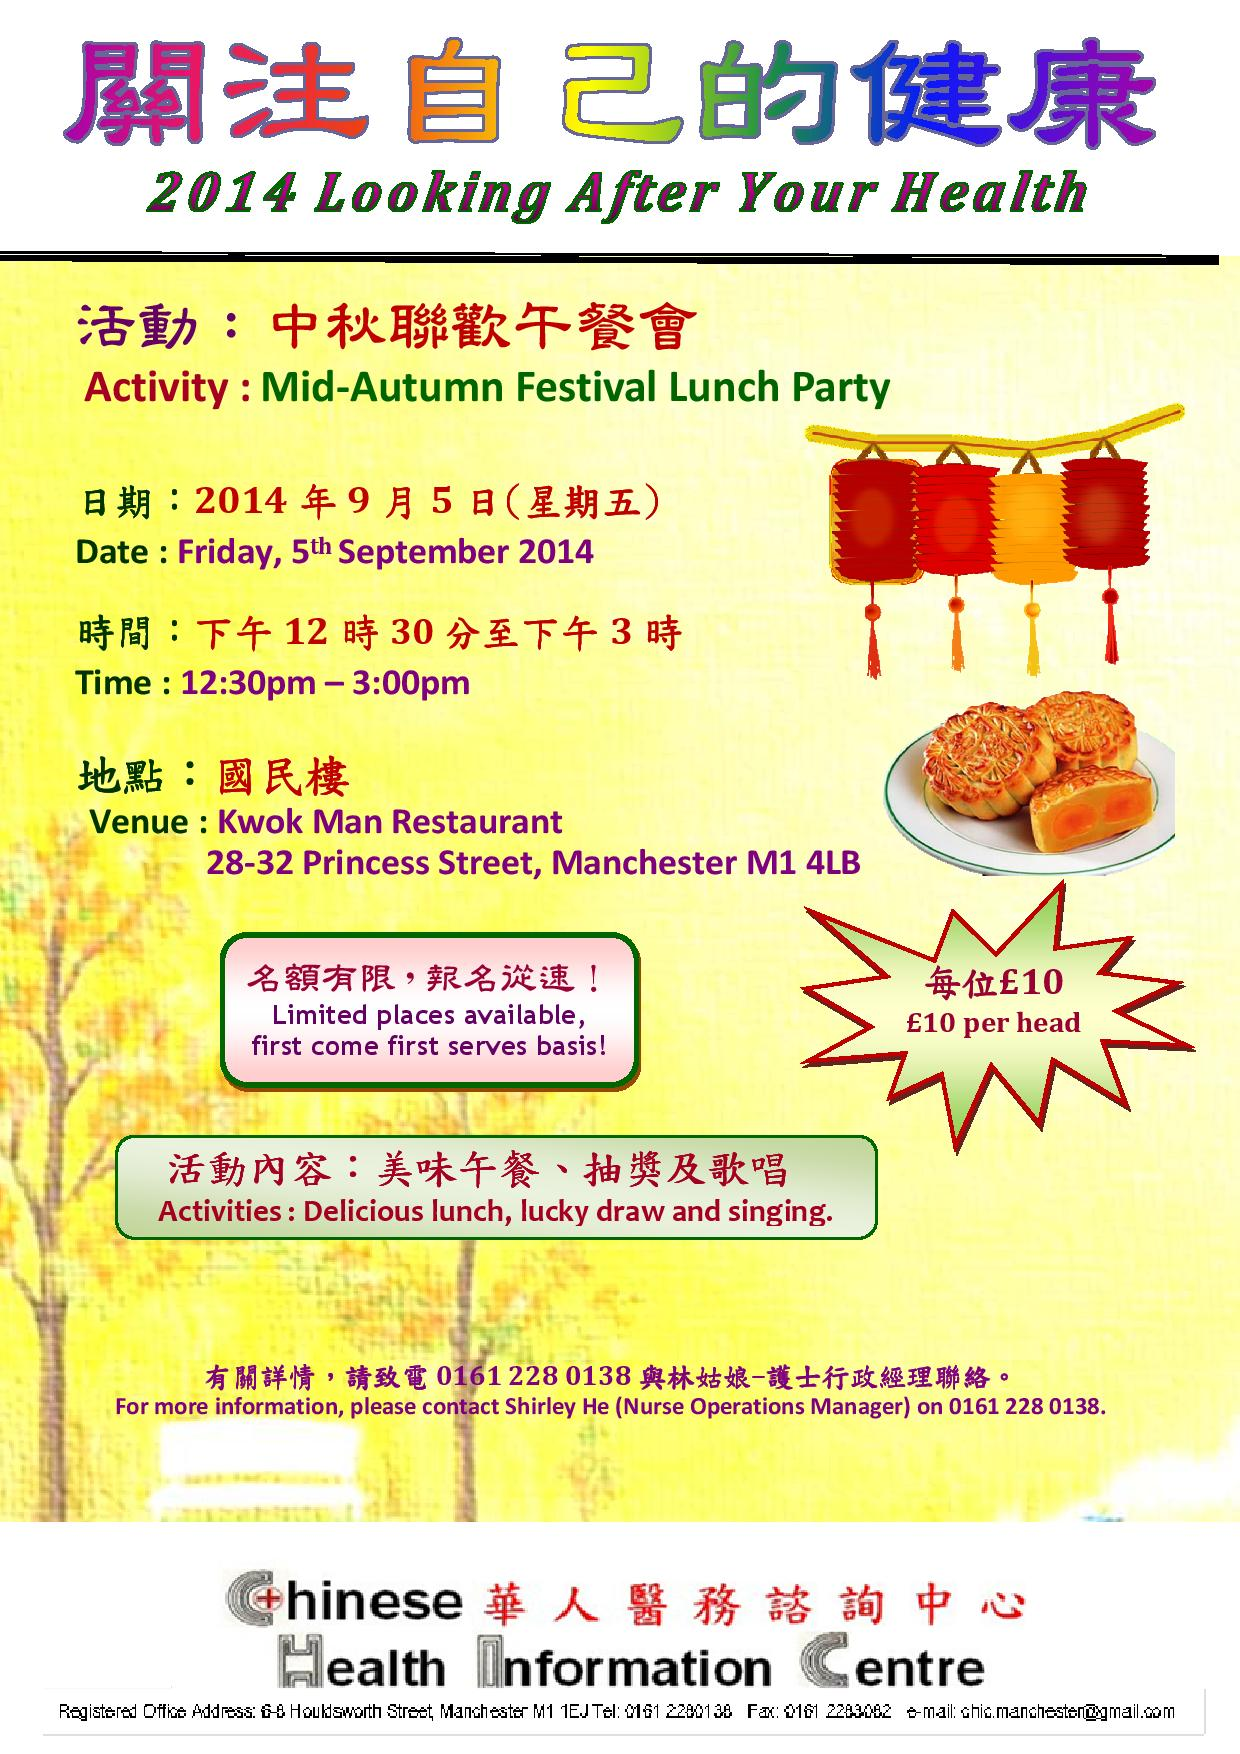 Mid-Autumn Festival Lunch Party